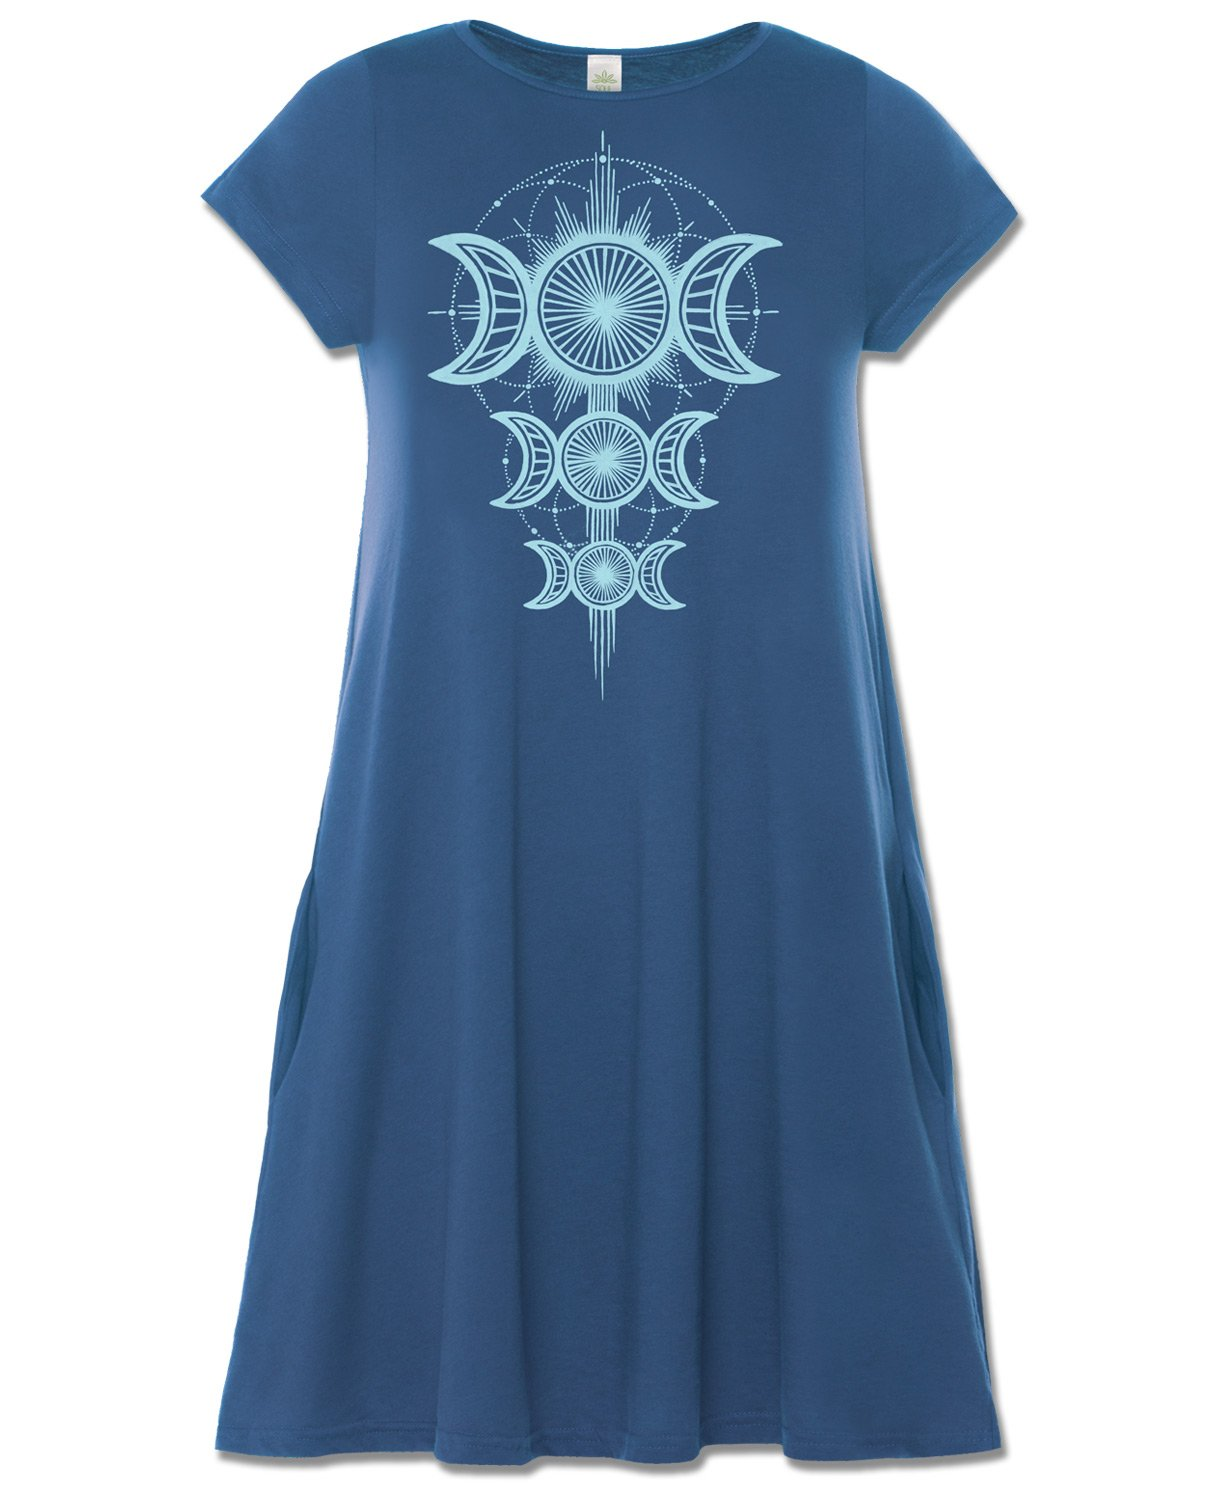 Available at Amazon: Soul Flower Organic Cotton Women's Moon Goddess T-Shirt Dress with Pockets Ladies Blue Crew Neck Flowy Graphic Swing Dress